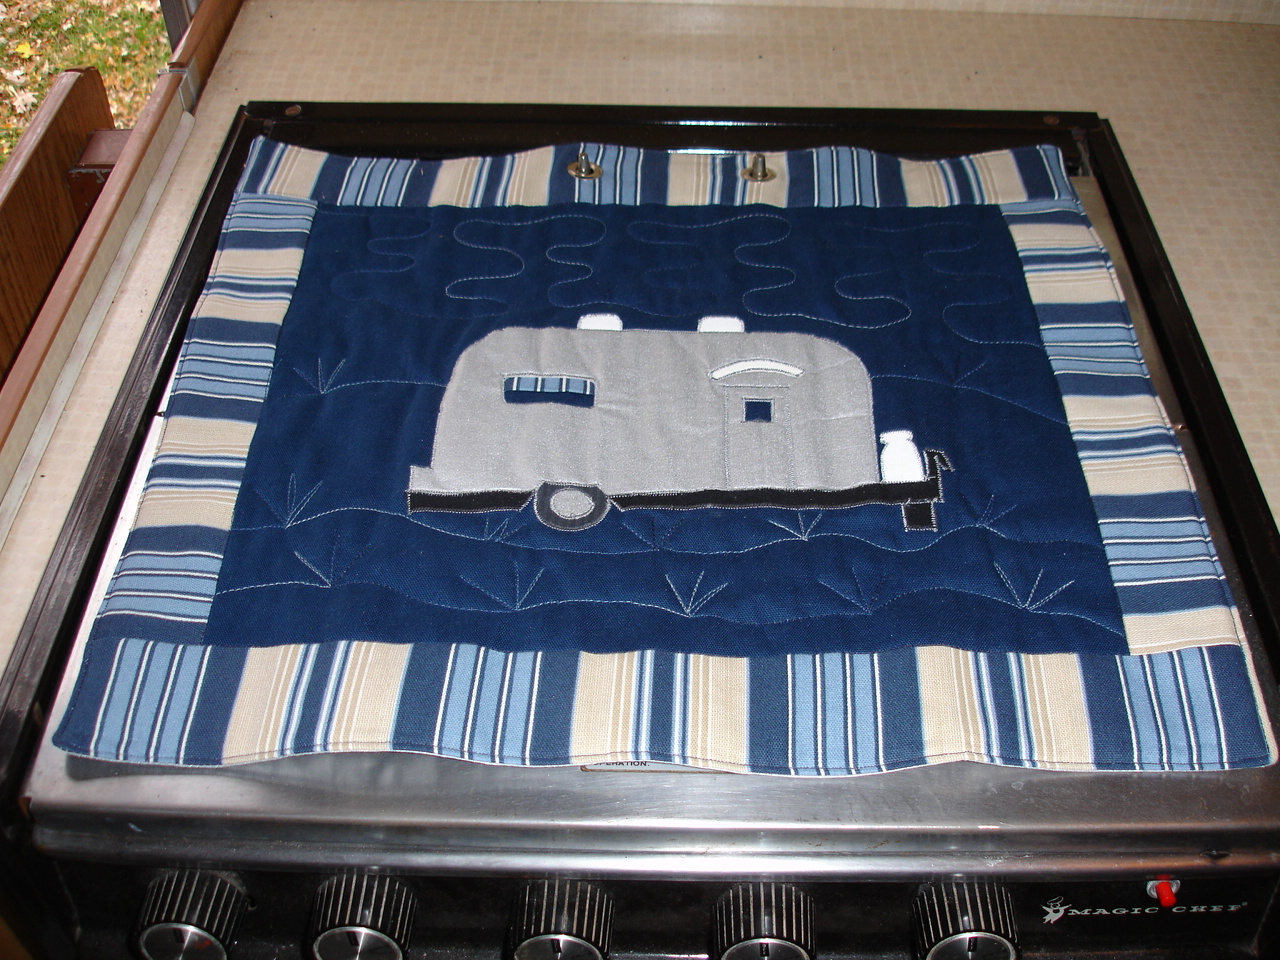 Click image for larger version  Name:Sandy's Stove Protectors 001.jpg Views:68 Size:563.1 KB ID:71267